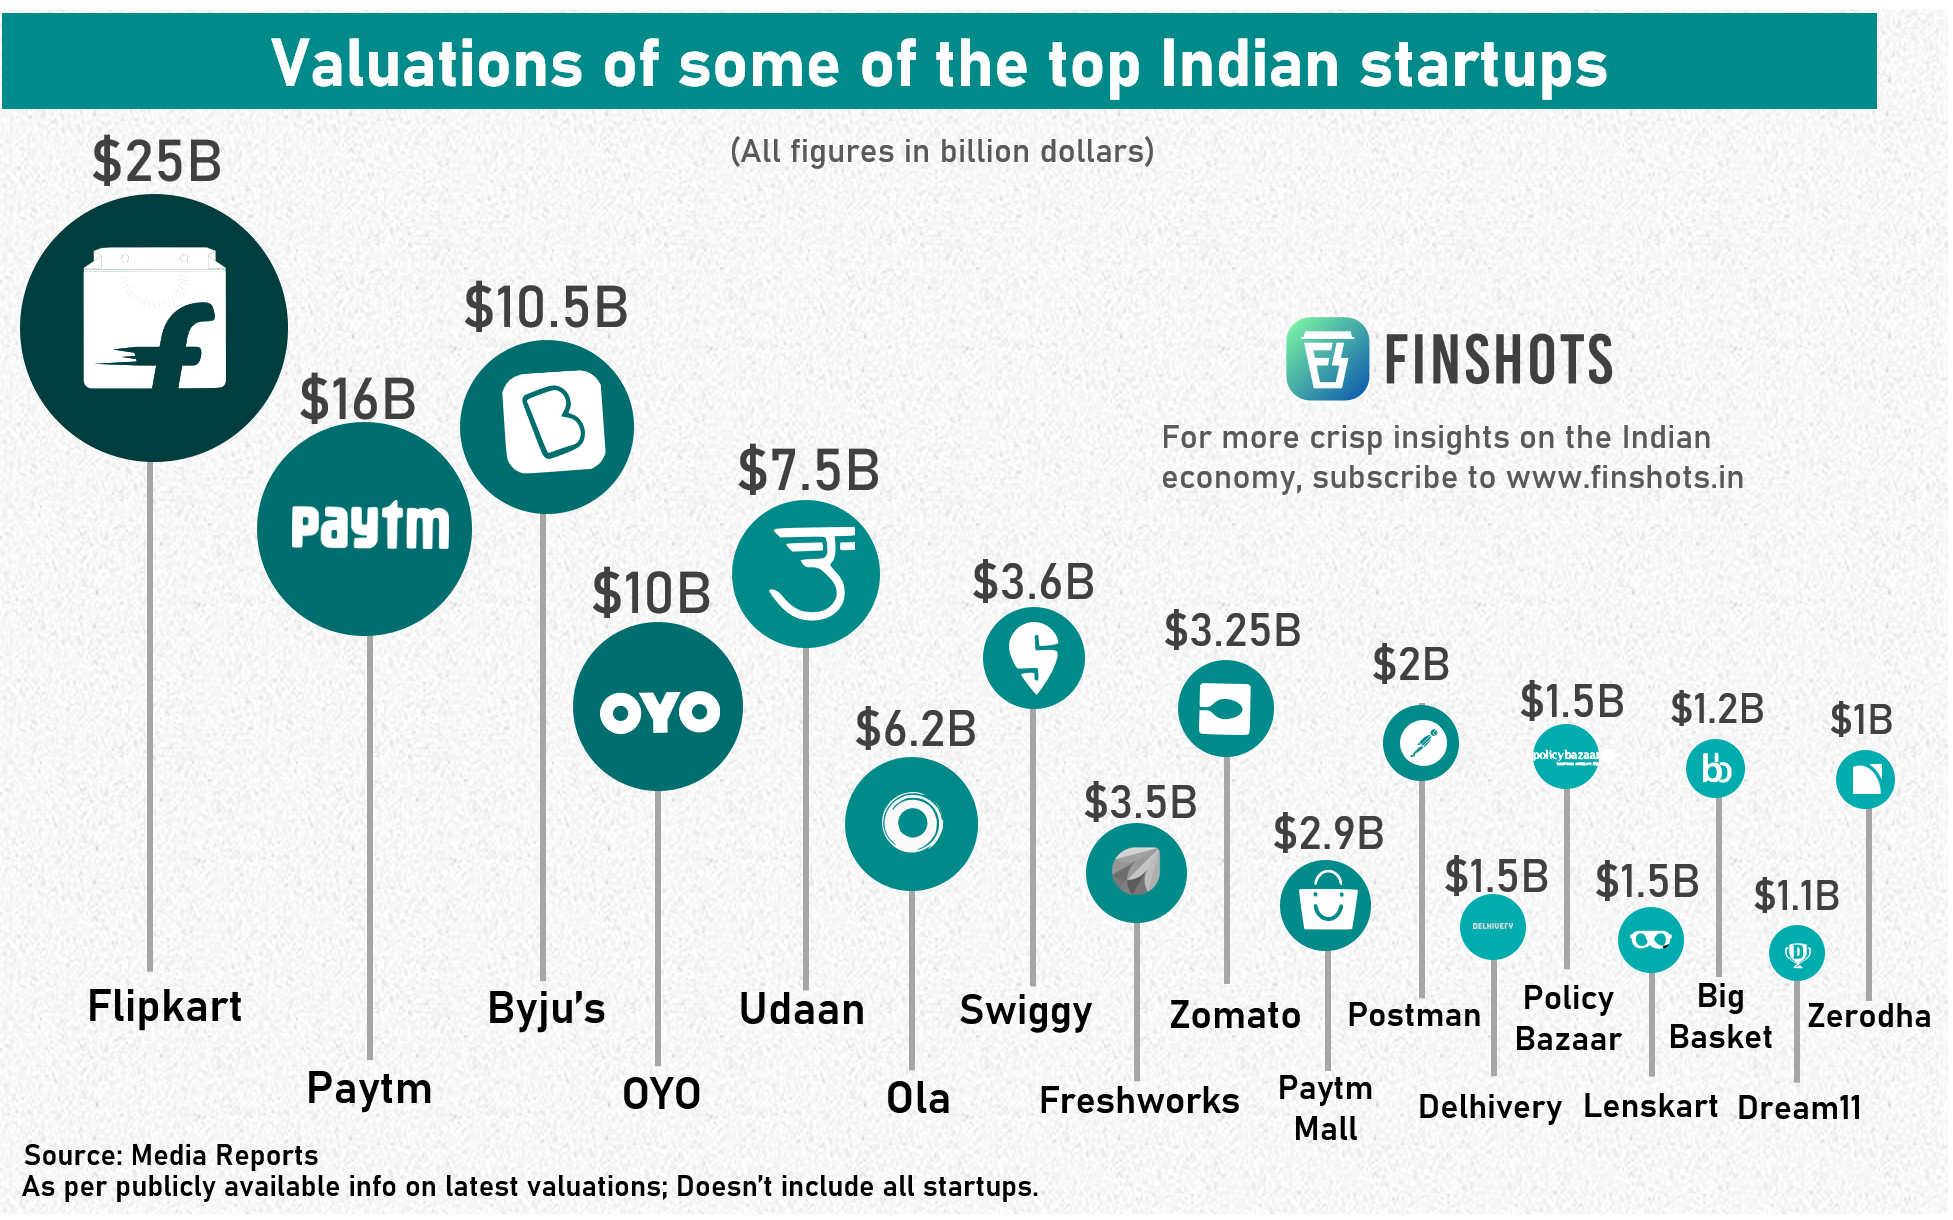 India's most valued startups